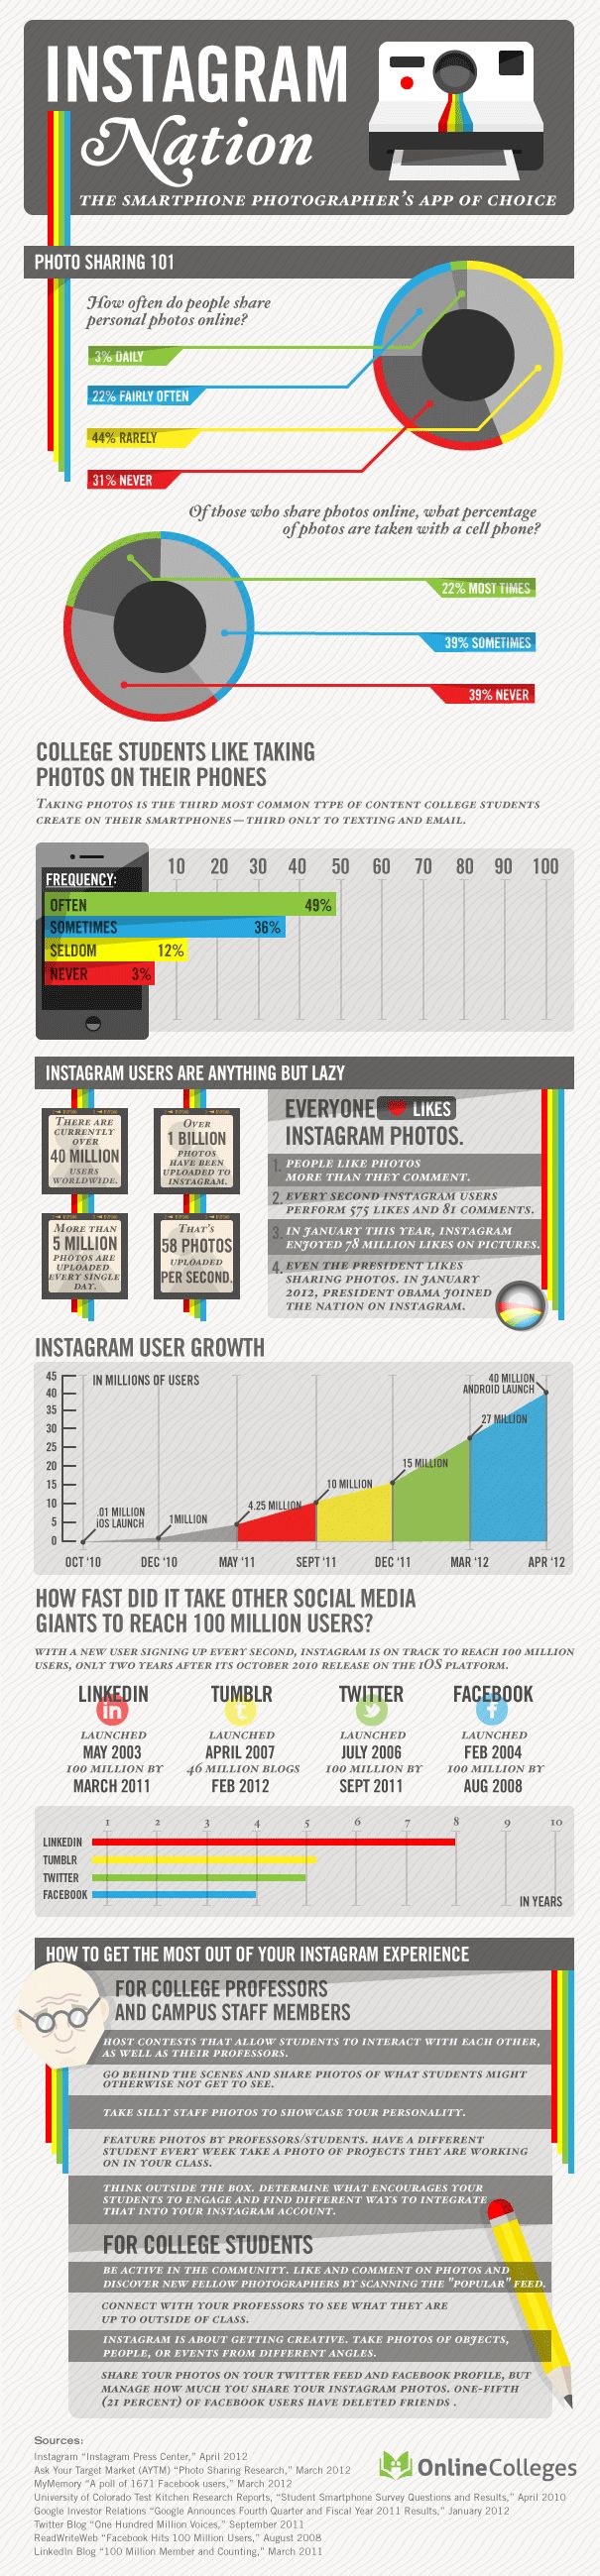 The Explosive Growth of Instagram – Infographic: Instagram Statistics, Instagram Infographic, Website, Smartphone Photographers, Social Media, Media Infographic, Instagram National, Socialmedia, Mobiles Photography